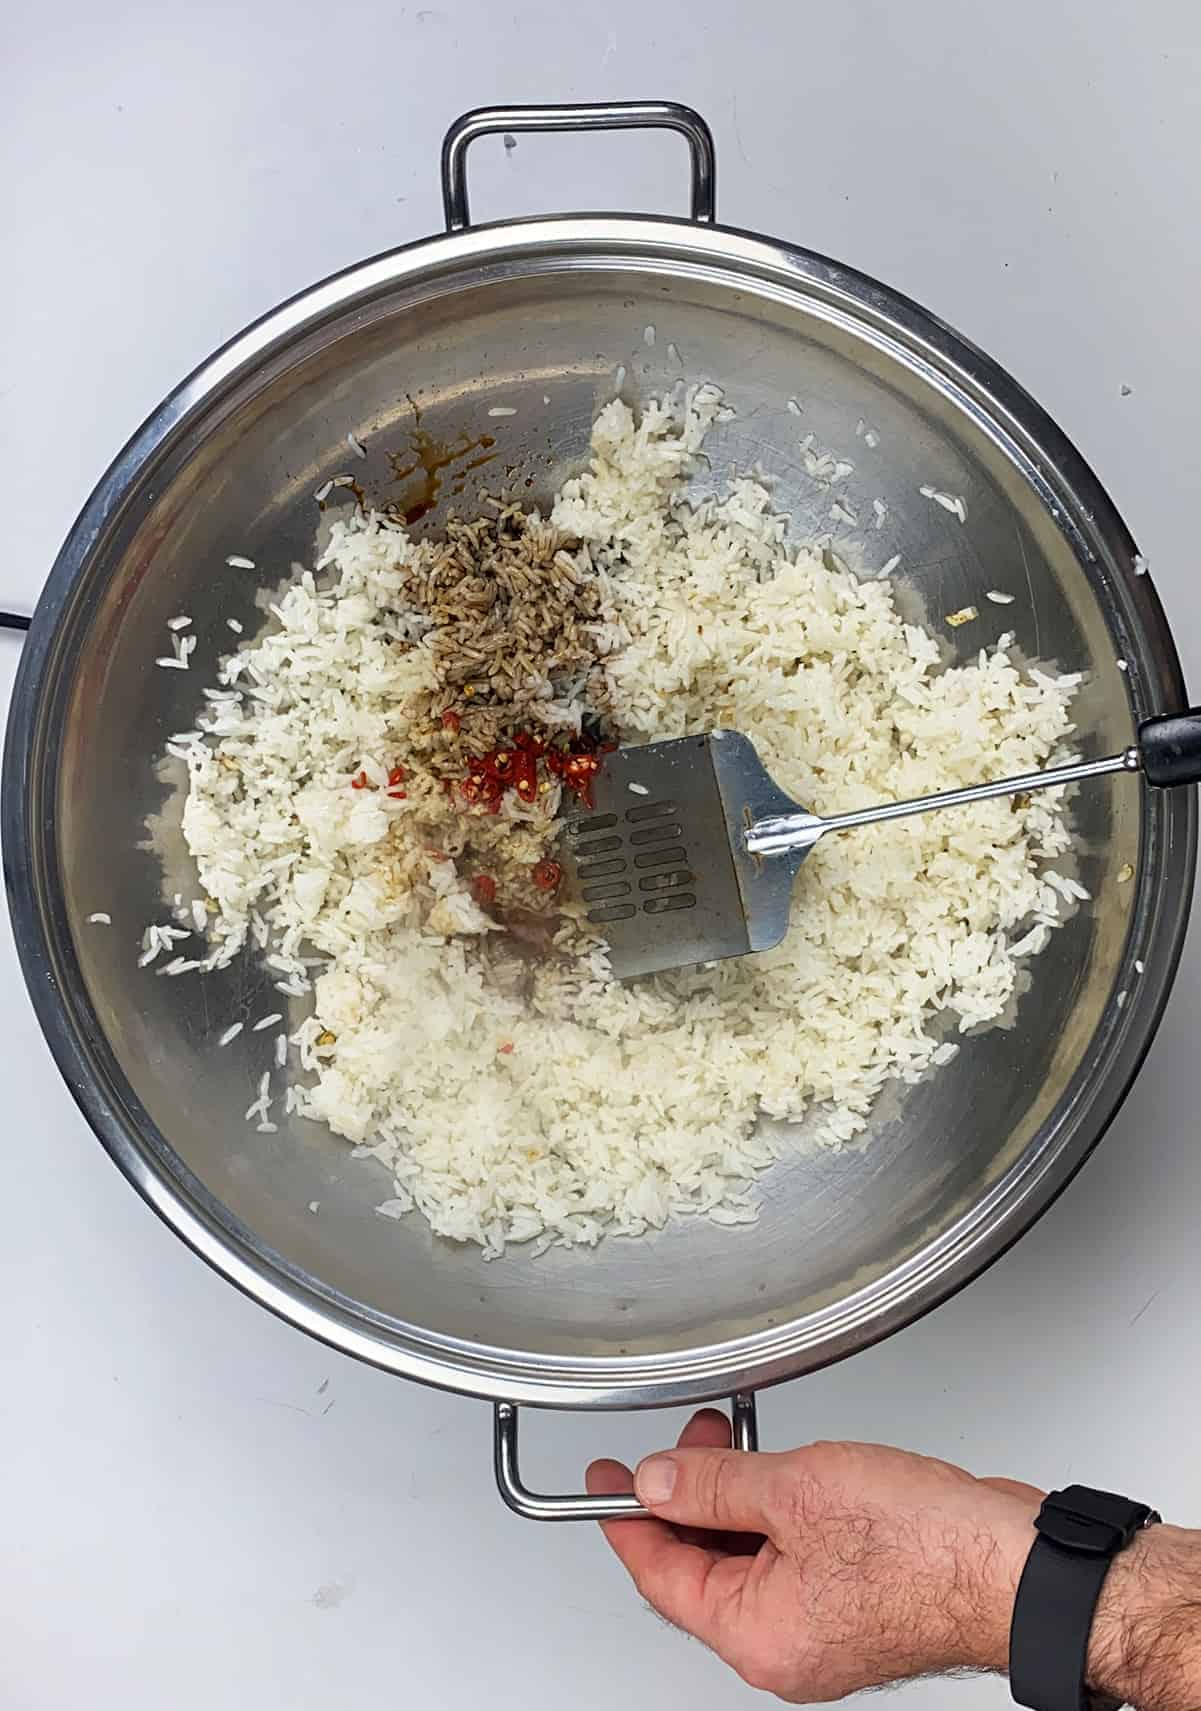 Vigorously stirring rice, pepper, and asian sauces in heated wok.